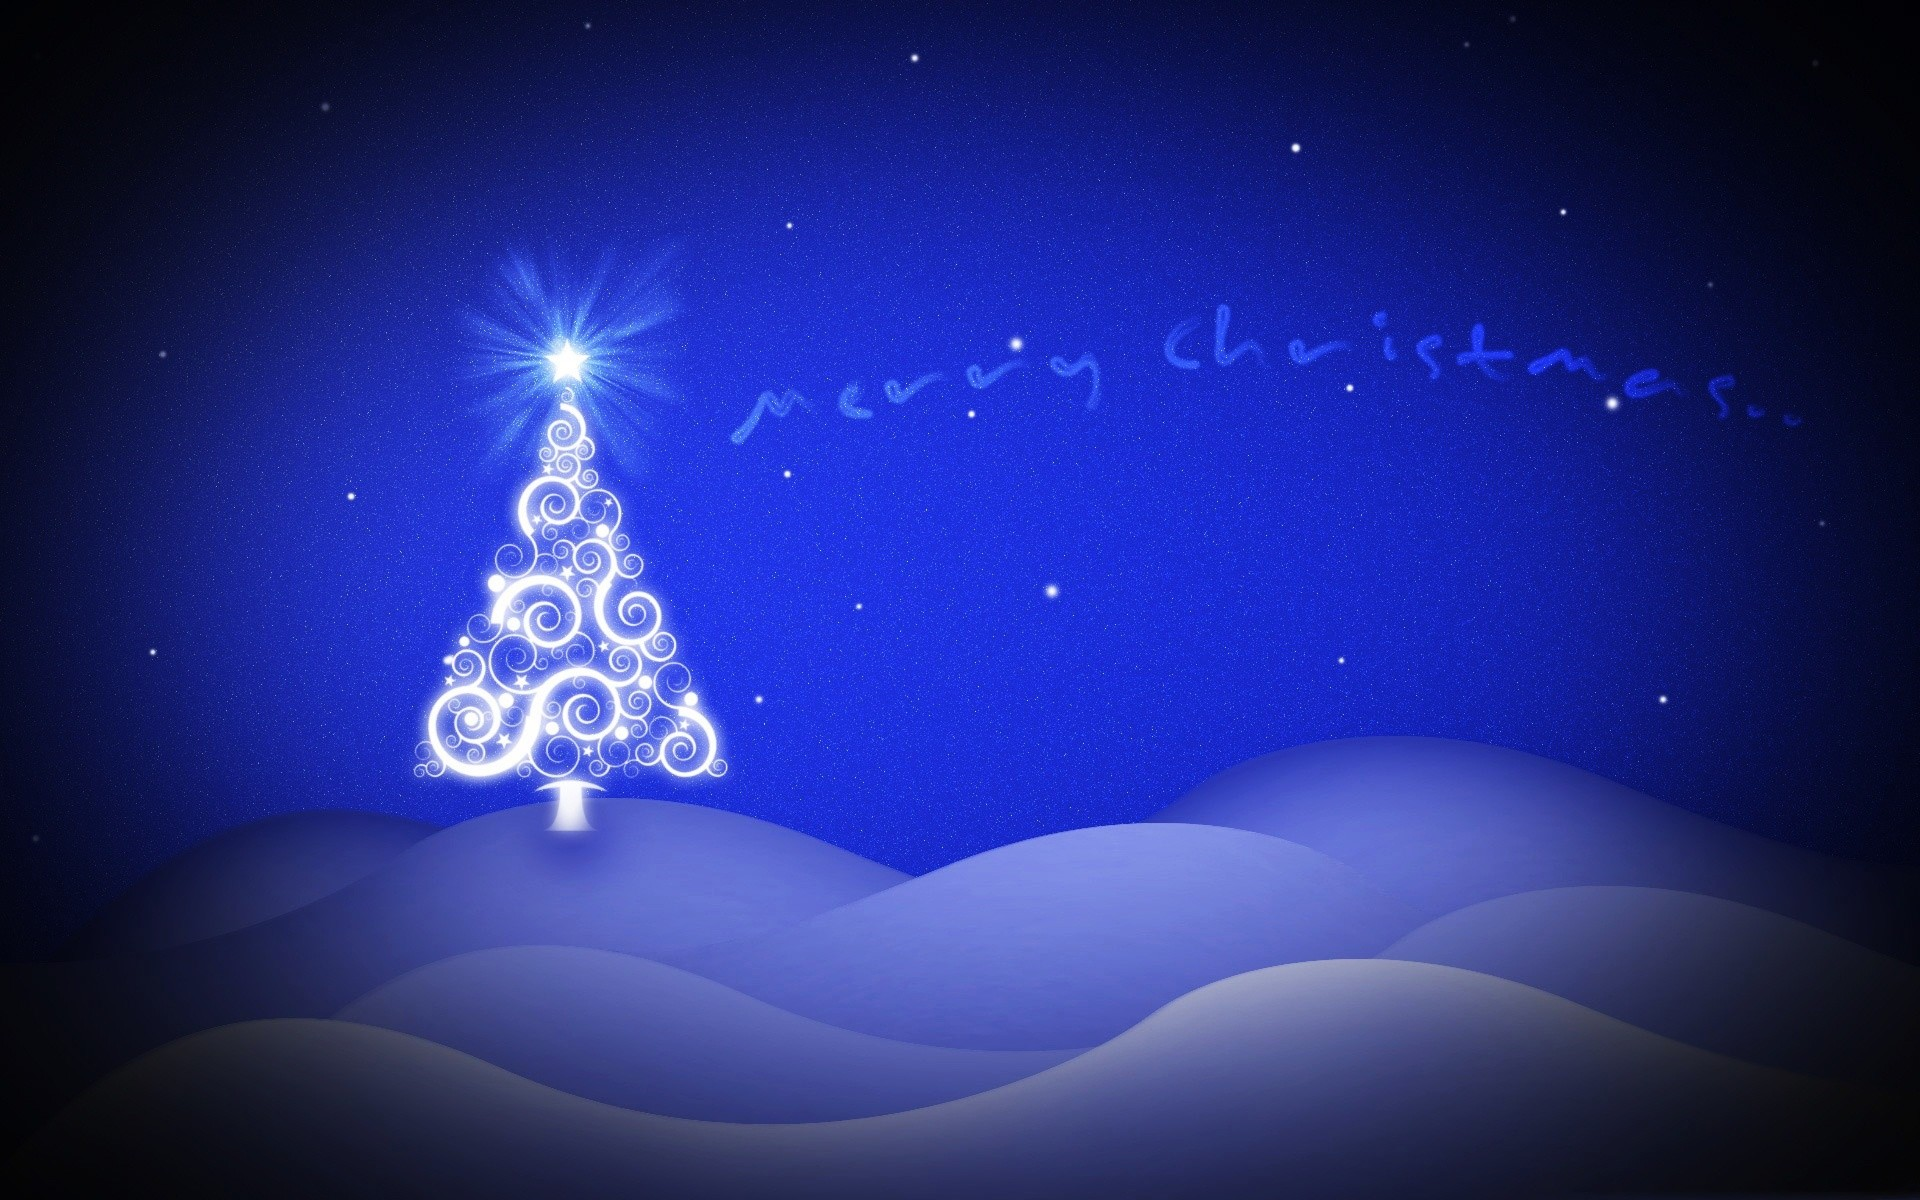 animated-christmas-wallpapers-backgrounds wallpapers